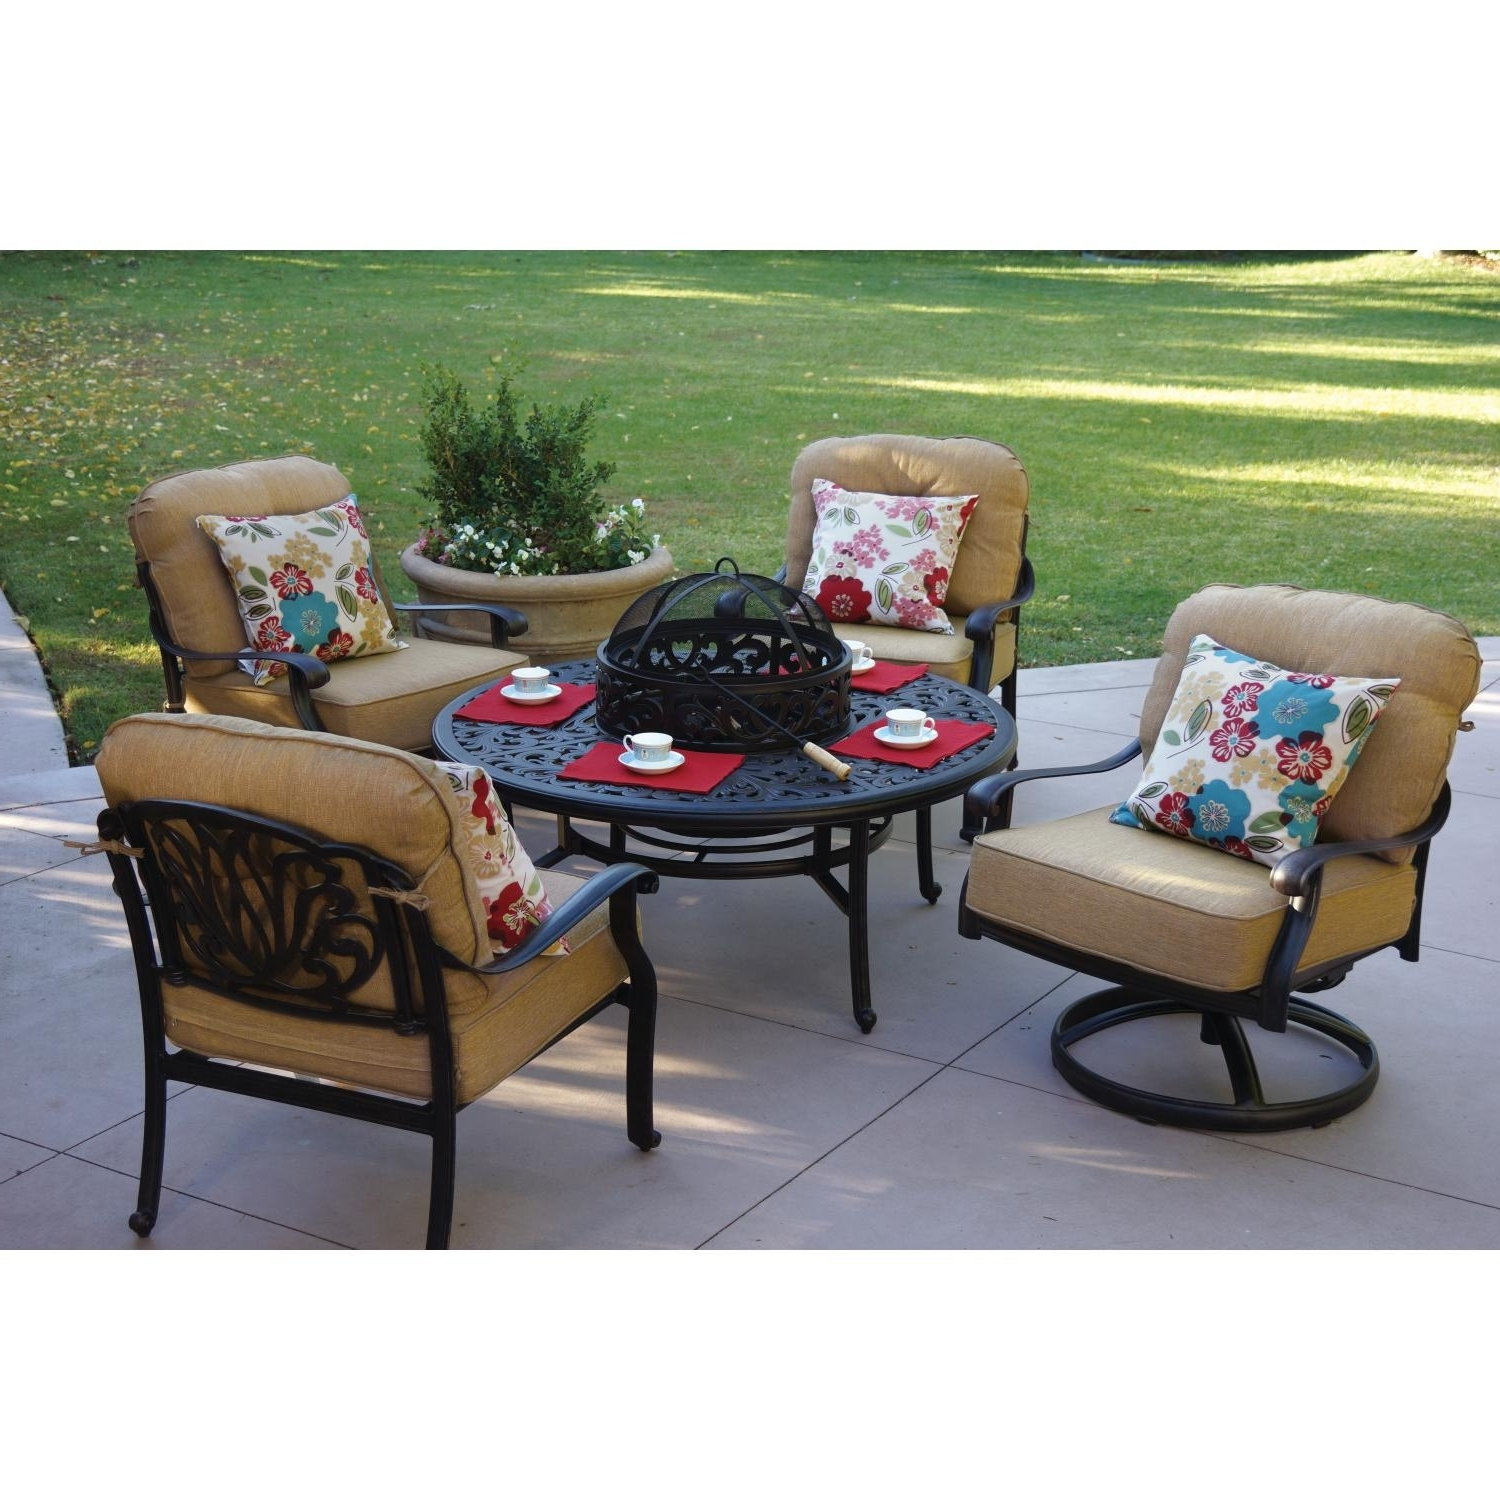 Patio Conversation Sets With Fire Pit Table Throughout Well Known Darlee Elisabeth 5 Piece Patio Fire Pit Conversation Seating Set (View 16 of 20)